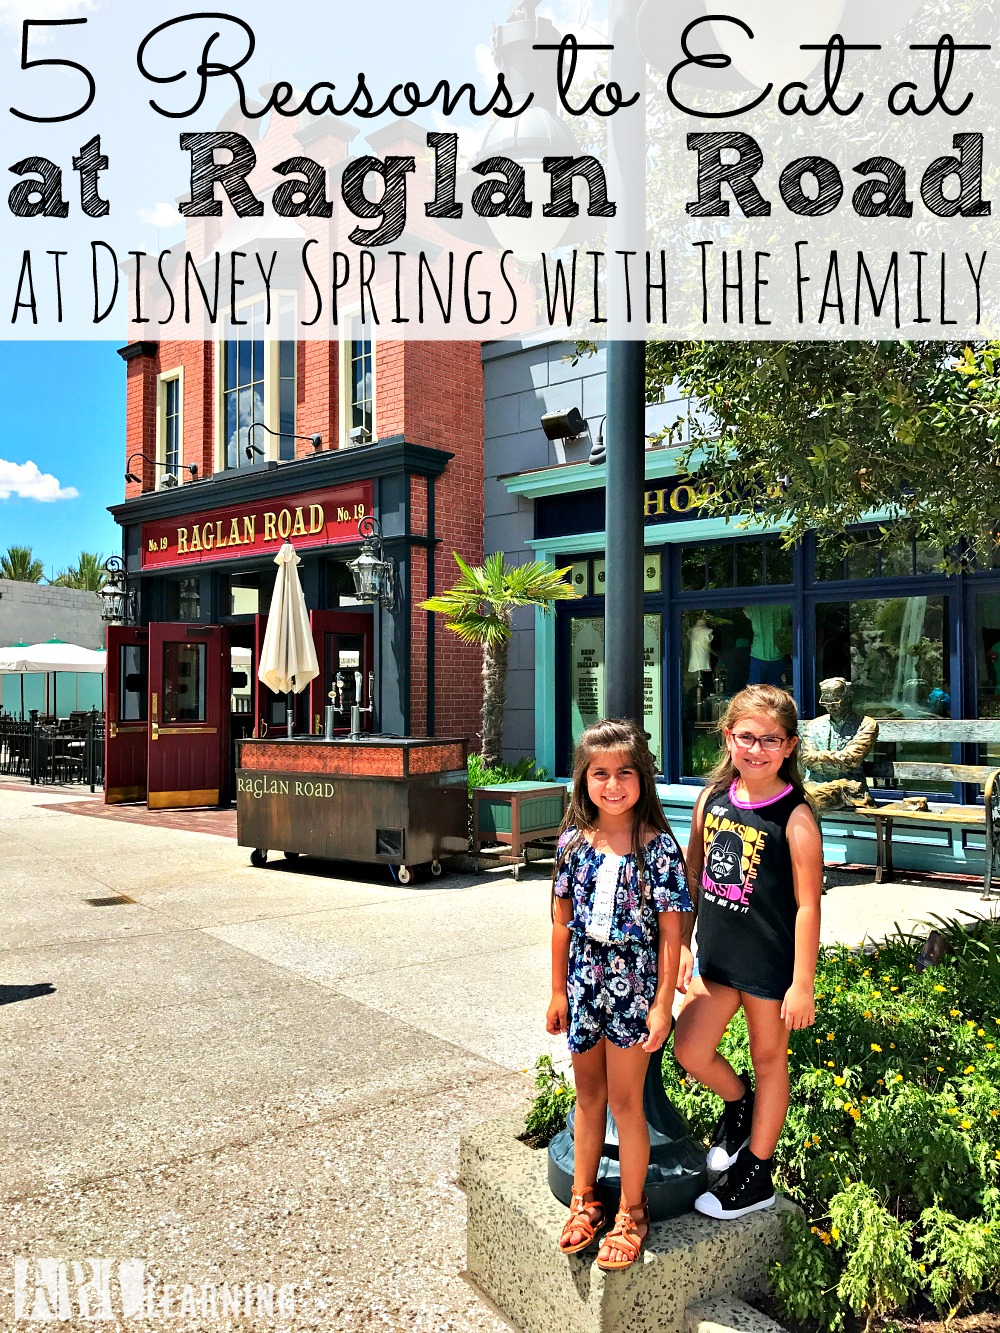 5 Reasons To Eat At Raglan Road At Disney Springs With The Family - simplytodaylife.com